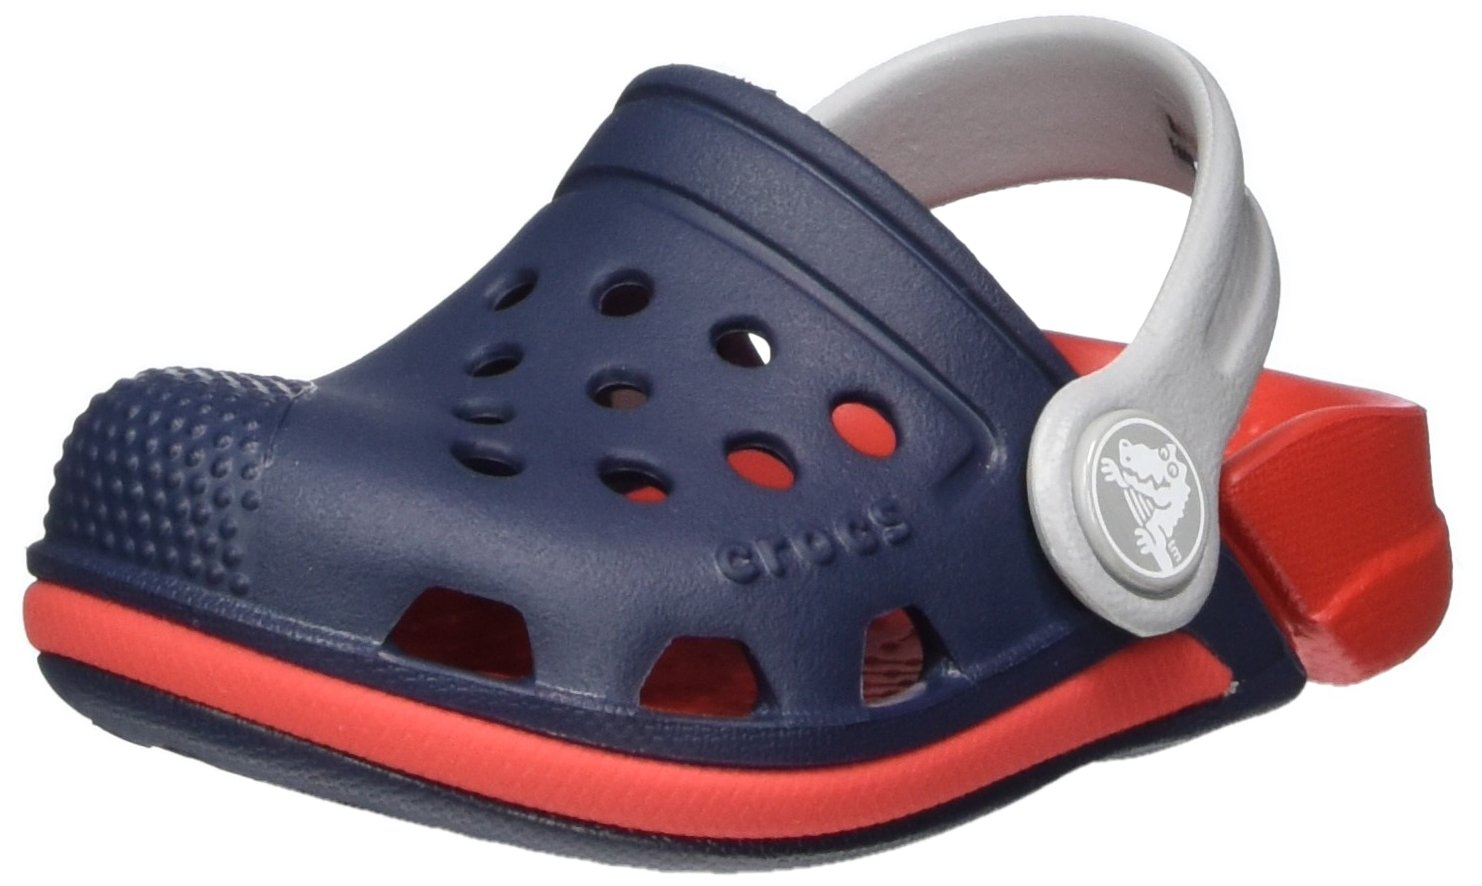 Crocs Kids' Electro III Clog, Navy/Flame, 8 M US Toddler